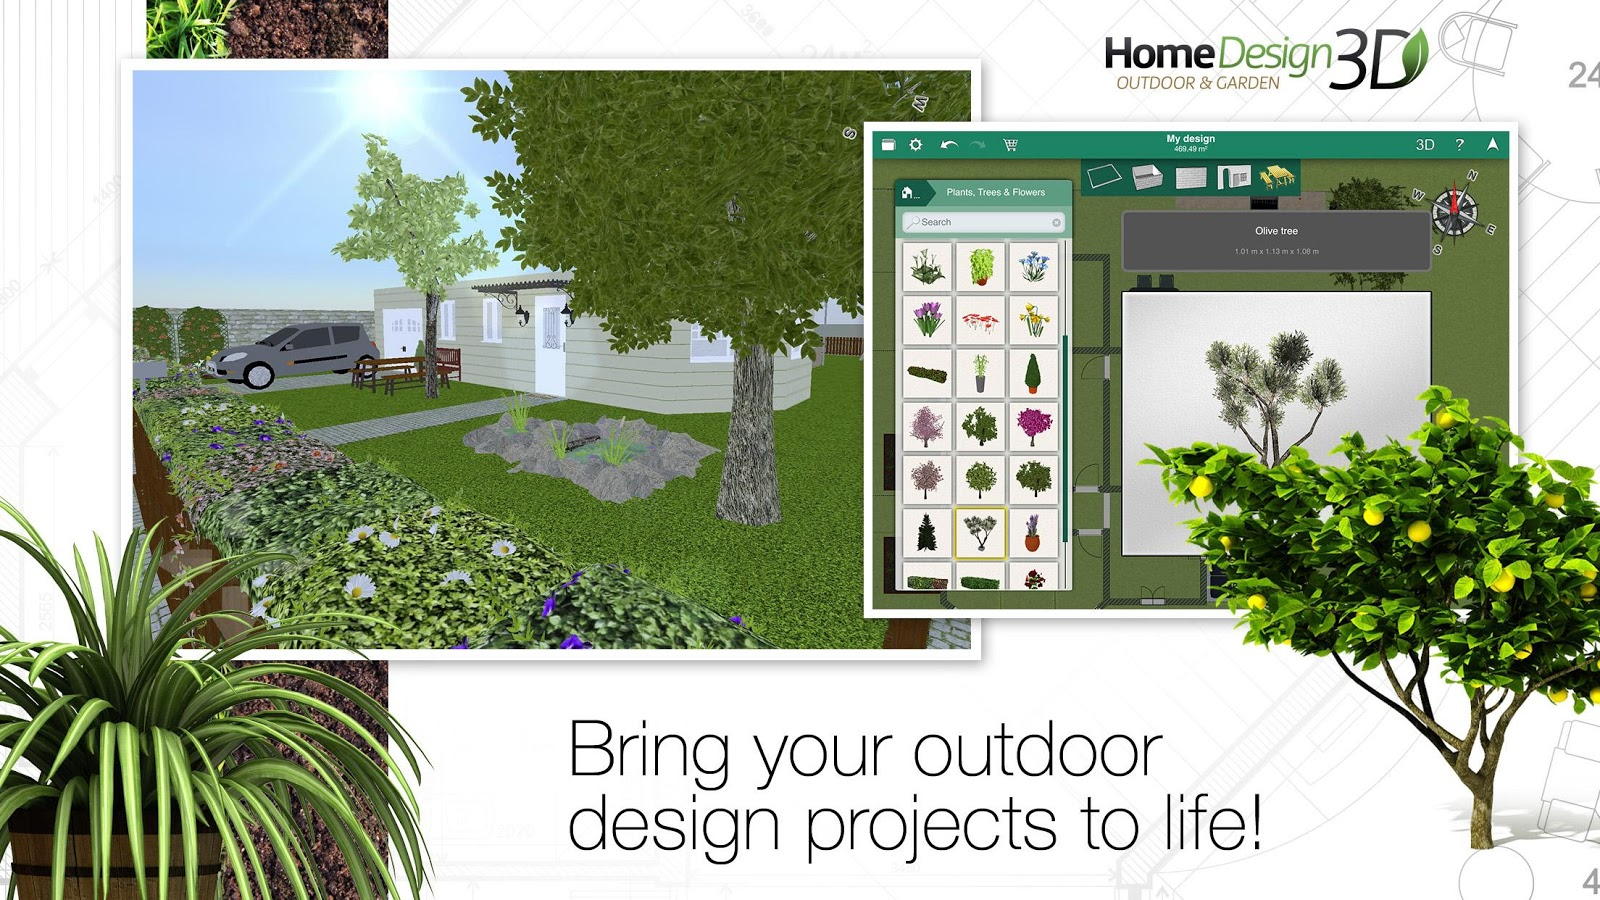 Home design 3d outdoor garden android apps on google play for Home design app